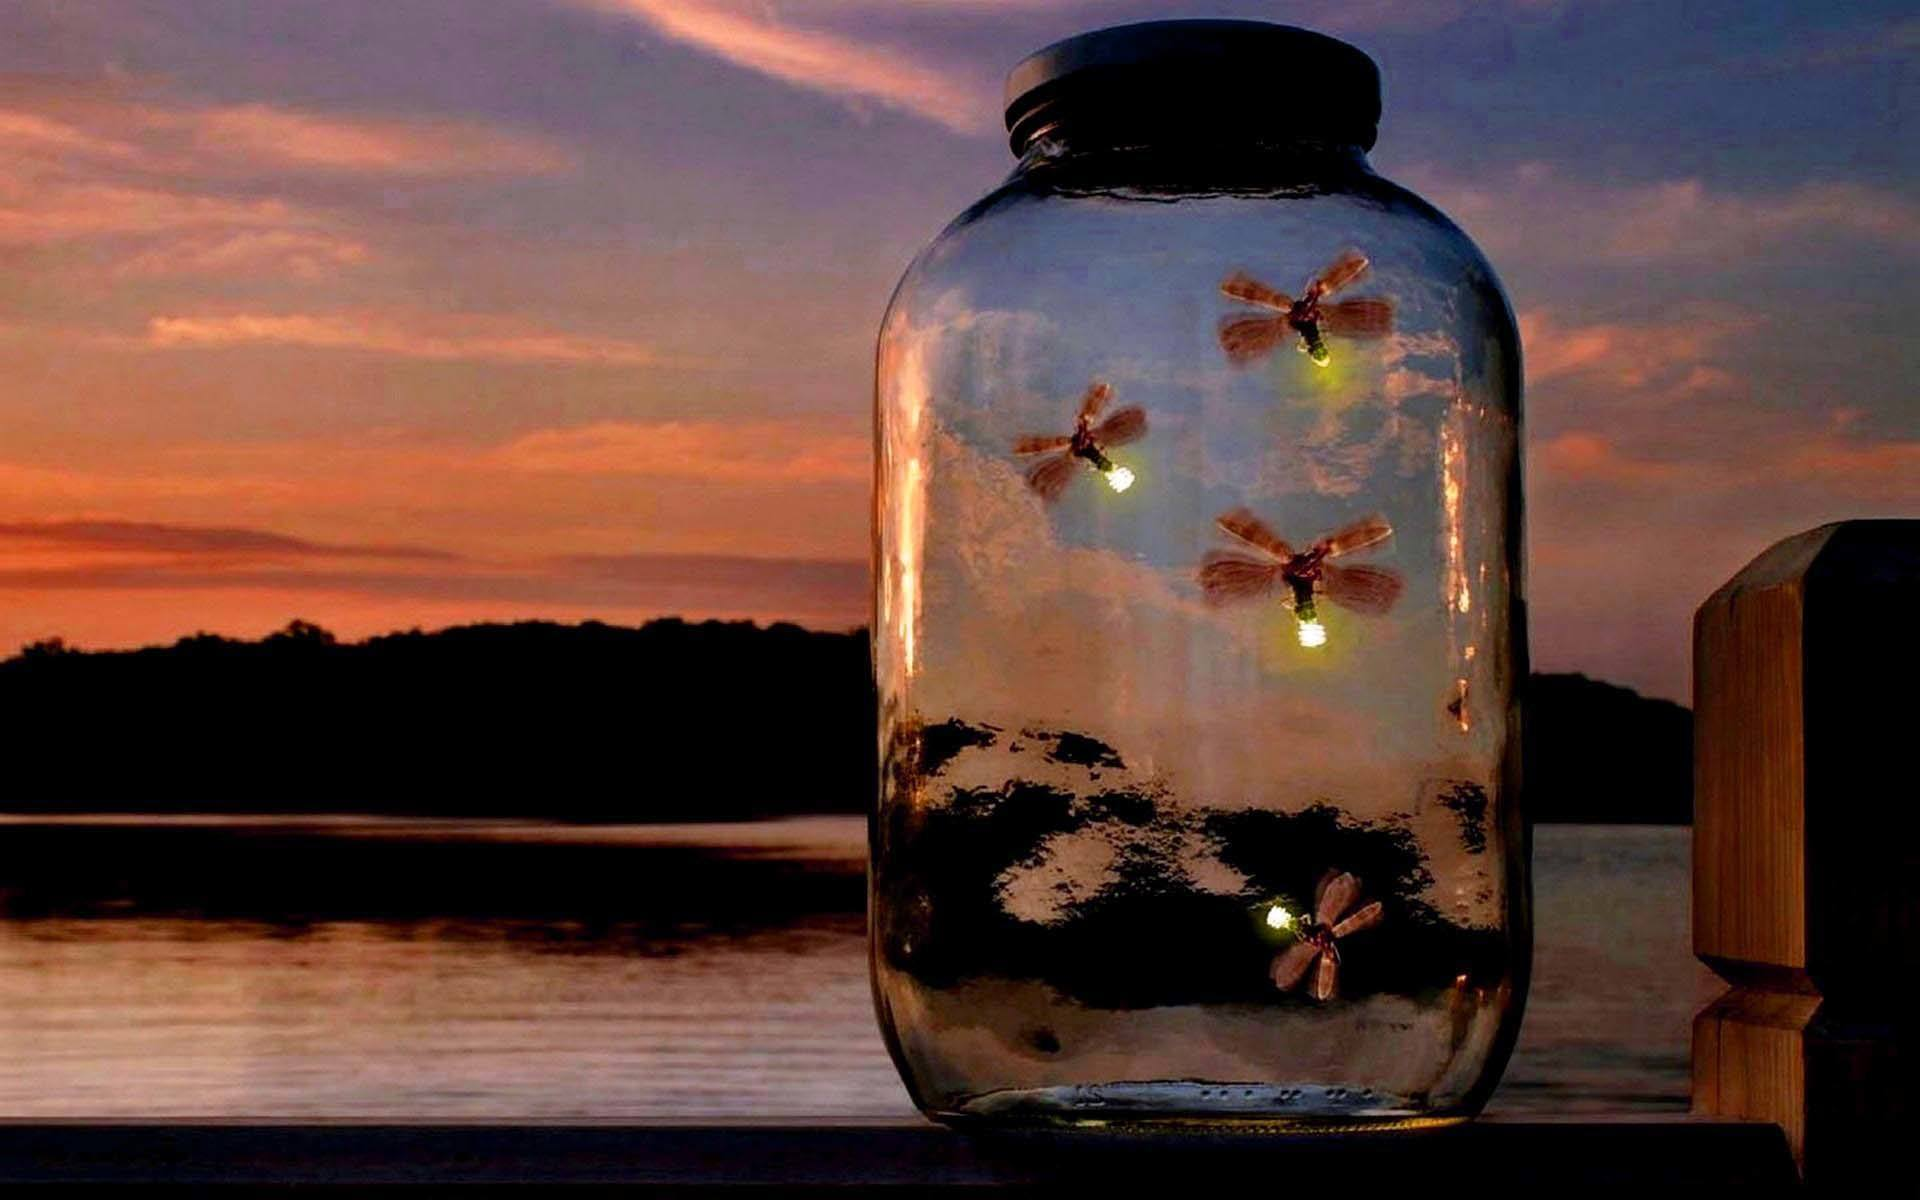 Pin by Kayjah Dotson on Party | Glow jars, Fireflies in a ... |Fireflies In A Jar Cover Photo